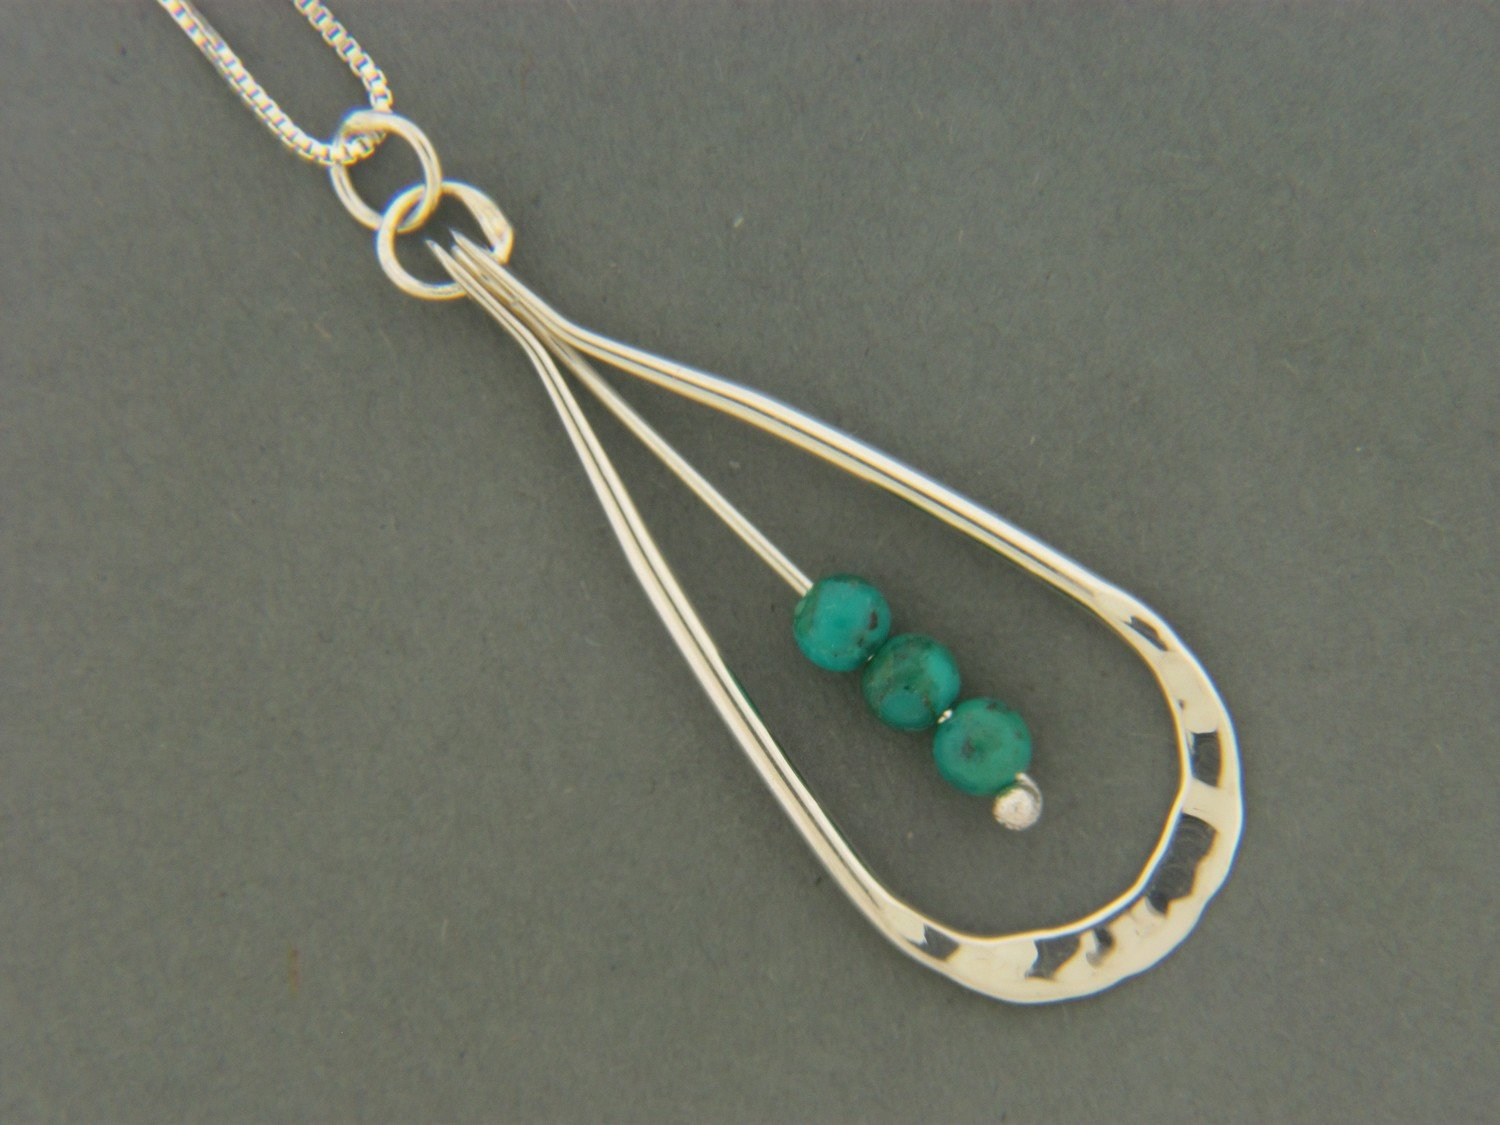 Collar Loop w/Bead Pendant